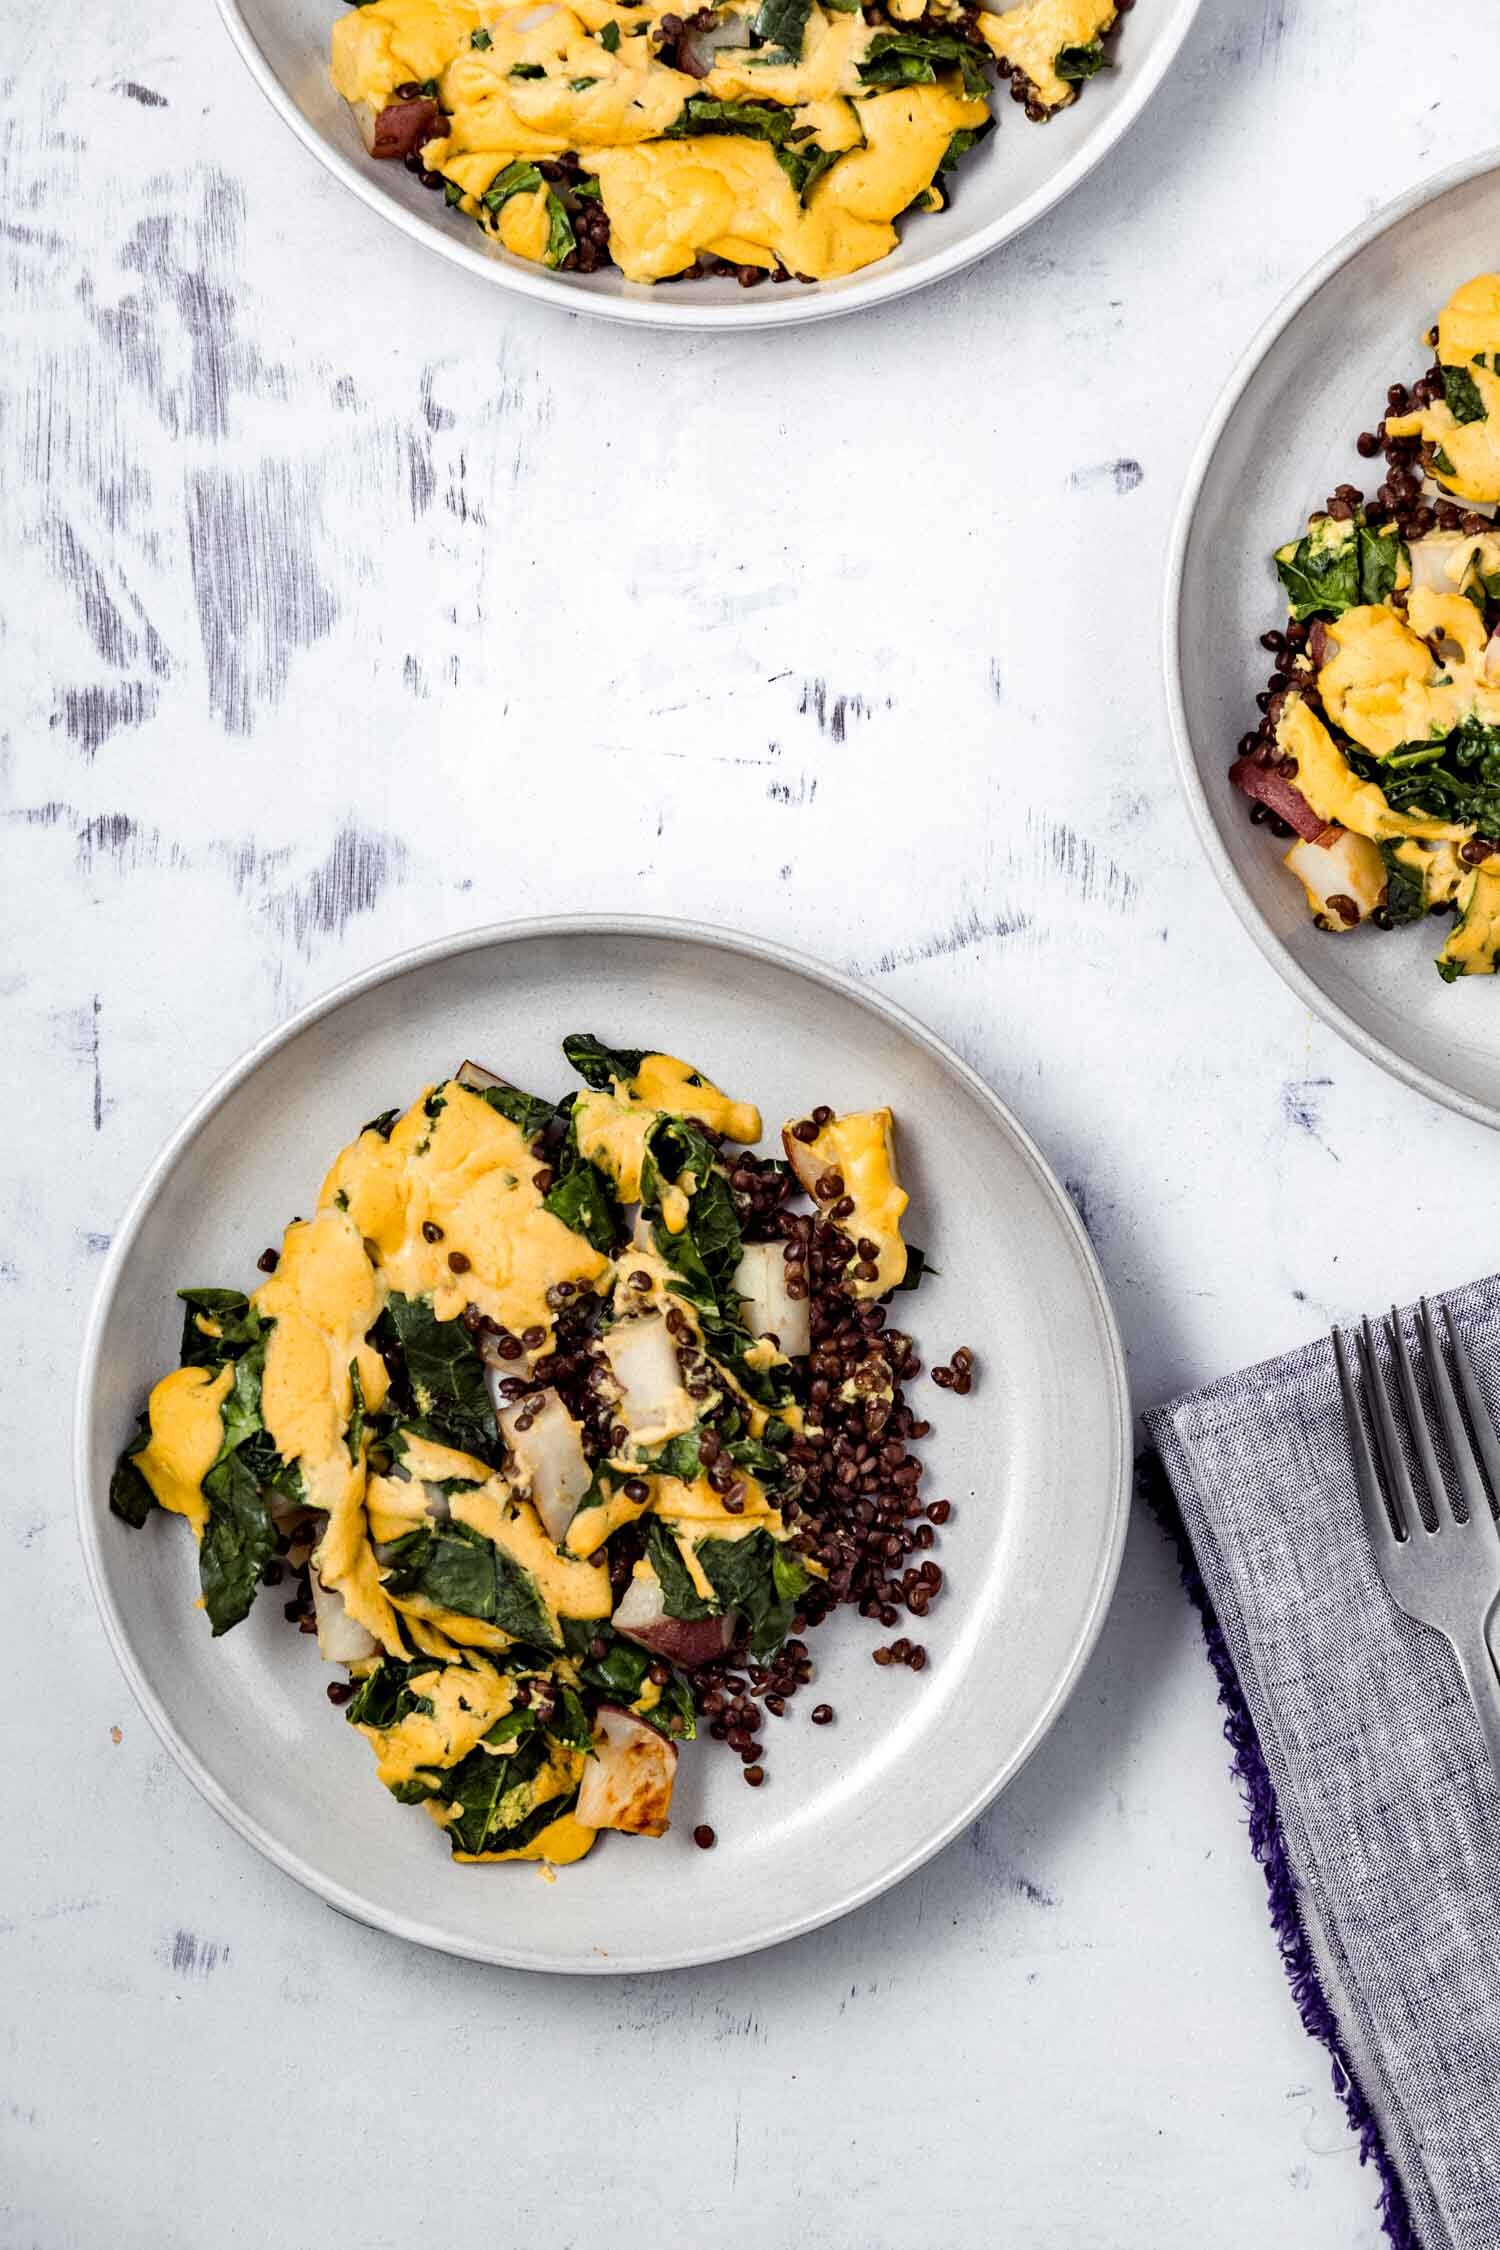 Cheesy Vegan Sheet Pan Potatoes with Greens and Lentils makes a full, satisfying meal. #plantbased #dinner #cheesy #vegan #cheesesauce #wfpb #glutenfree #grainfree #oilfree #greens #kale #collards #lentils #veggies #sheetpan #comfortfood